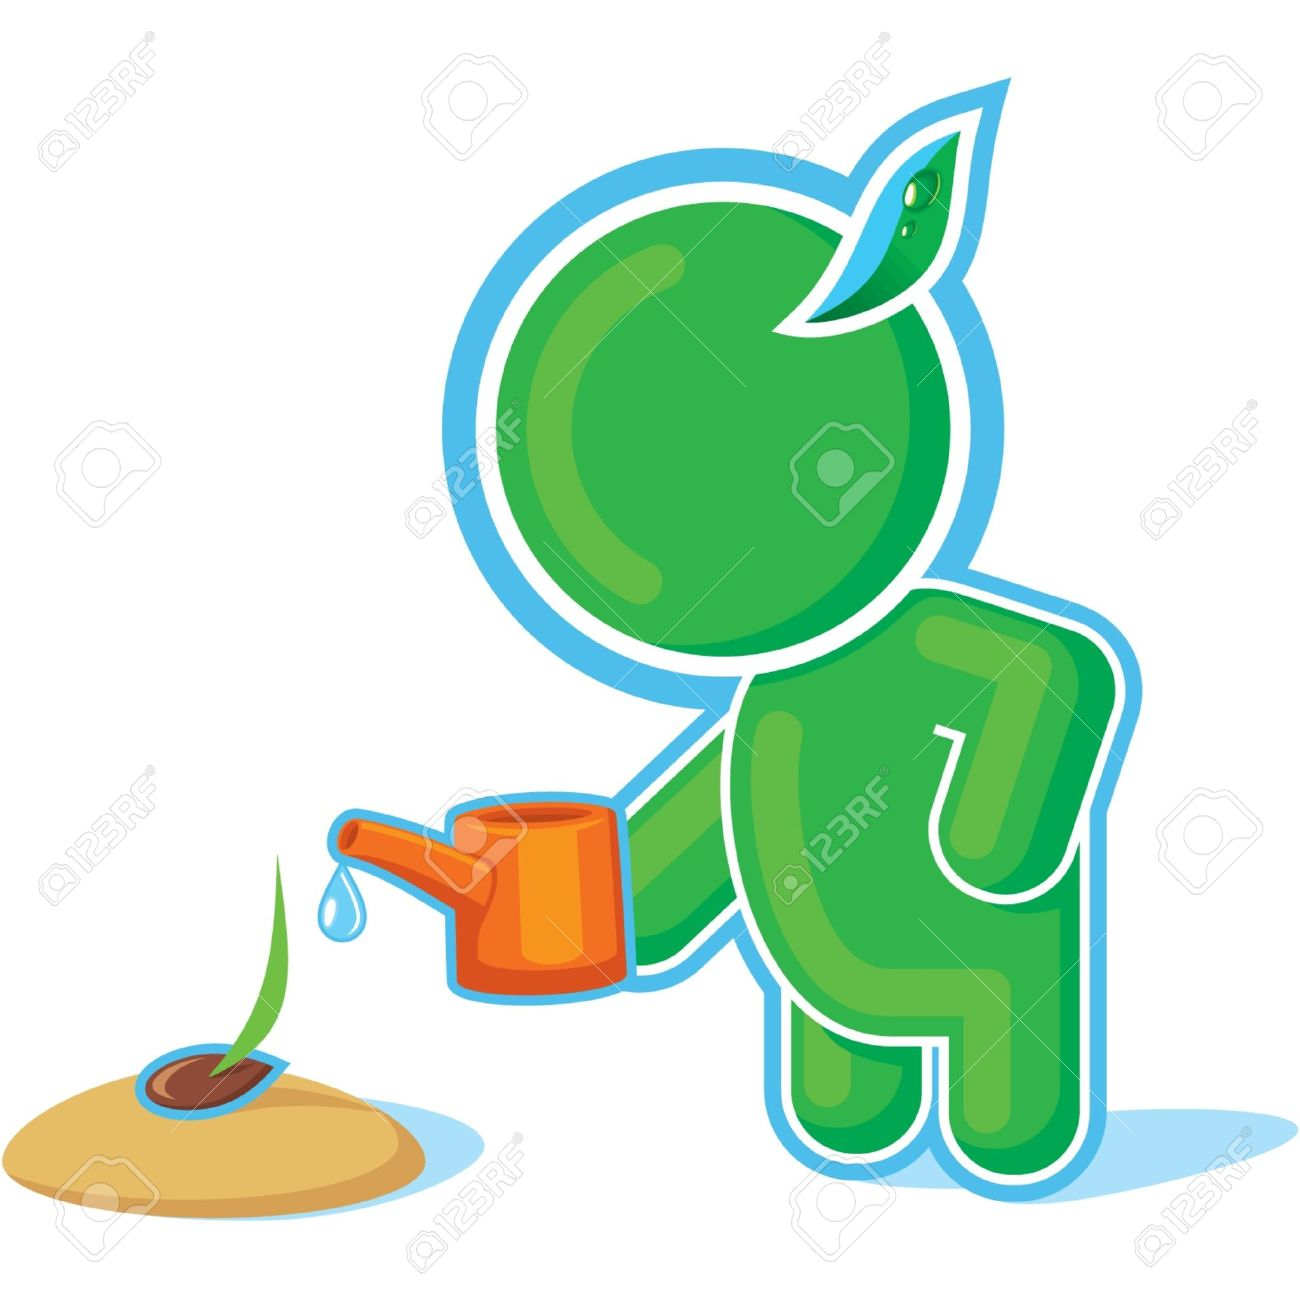 Green Hero Watering a Seed Stock Vector - 11113948